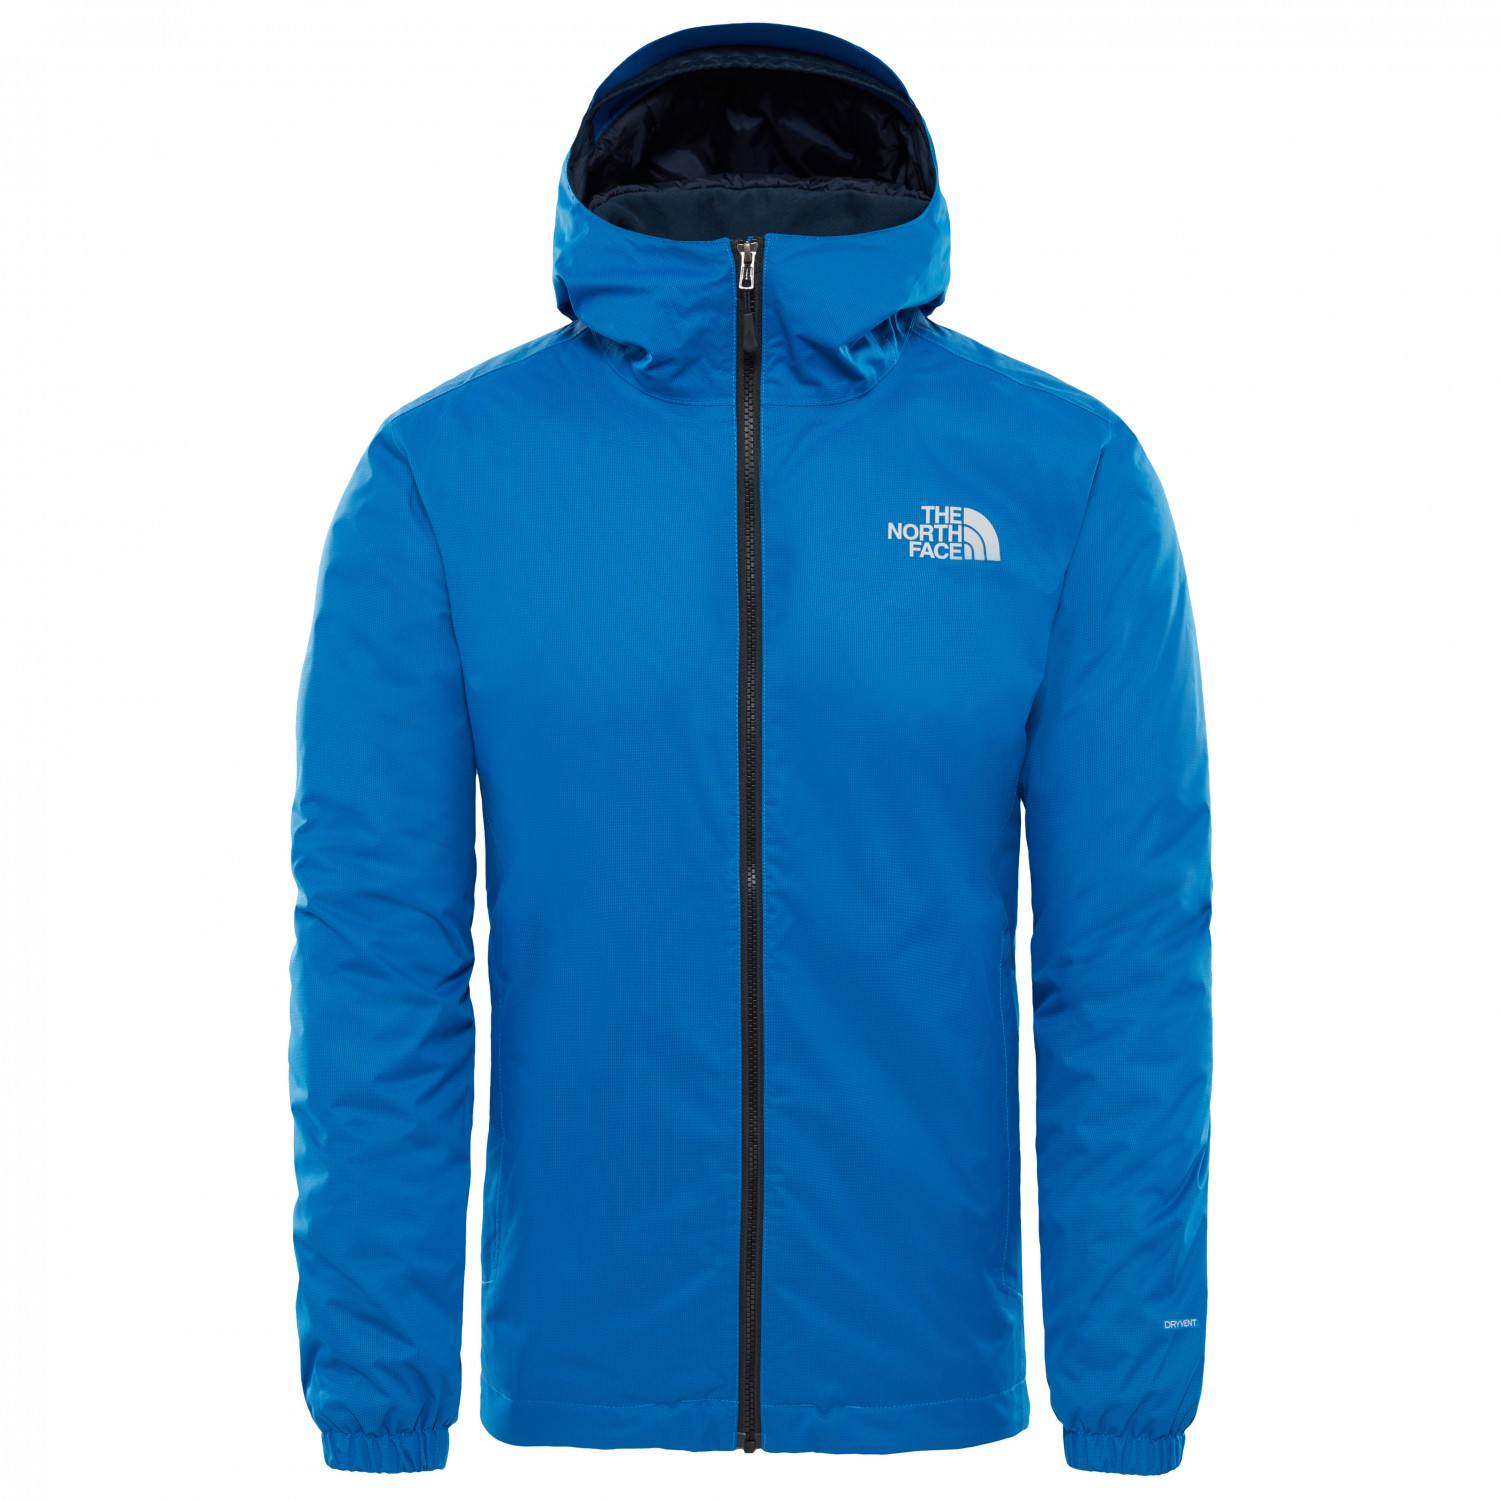 bed0bd6b3f The North Face Quest Insulated Jacket - Winter Jacket Men s